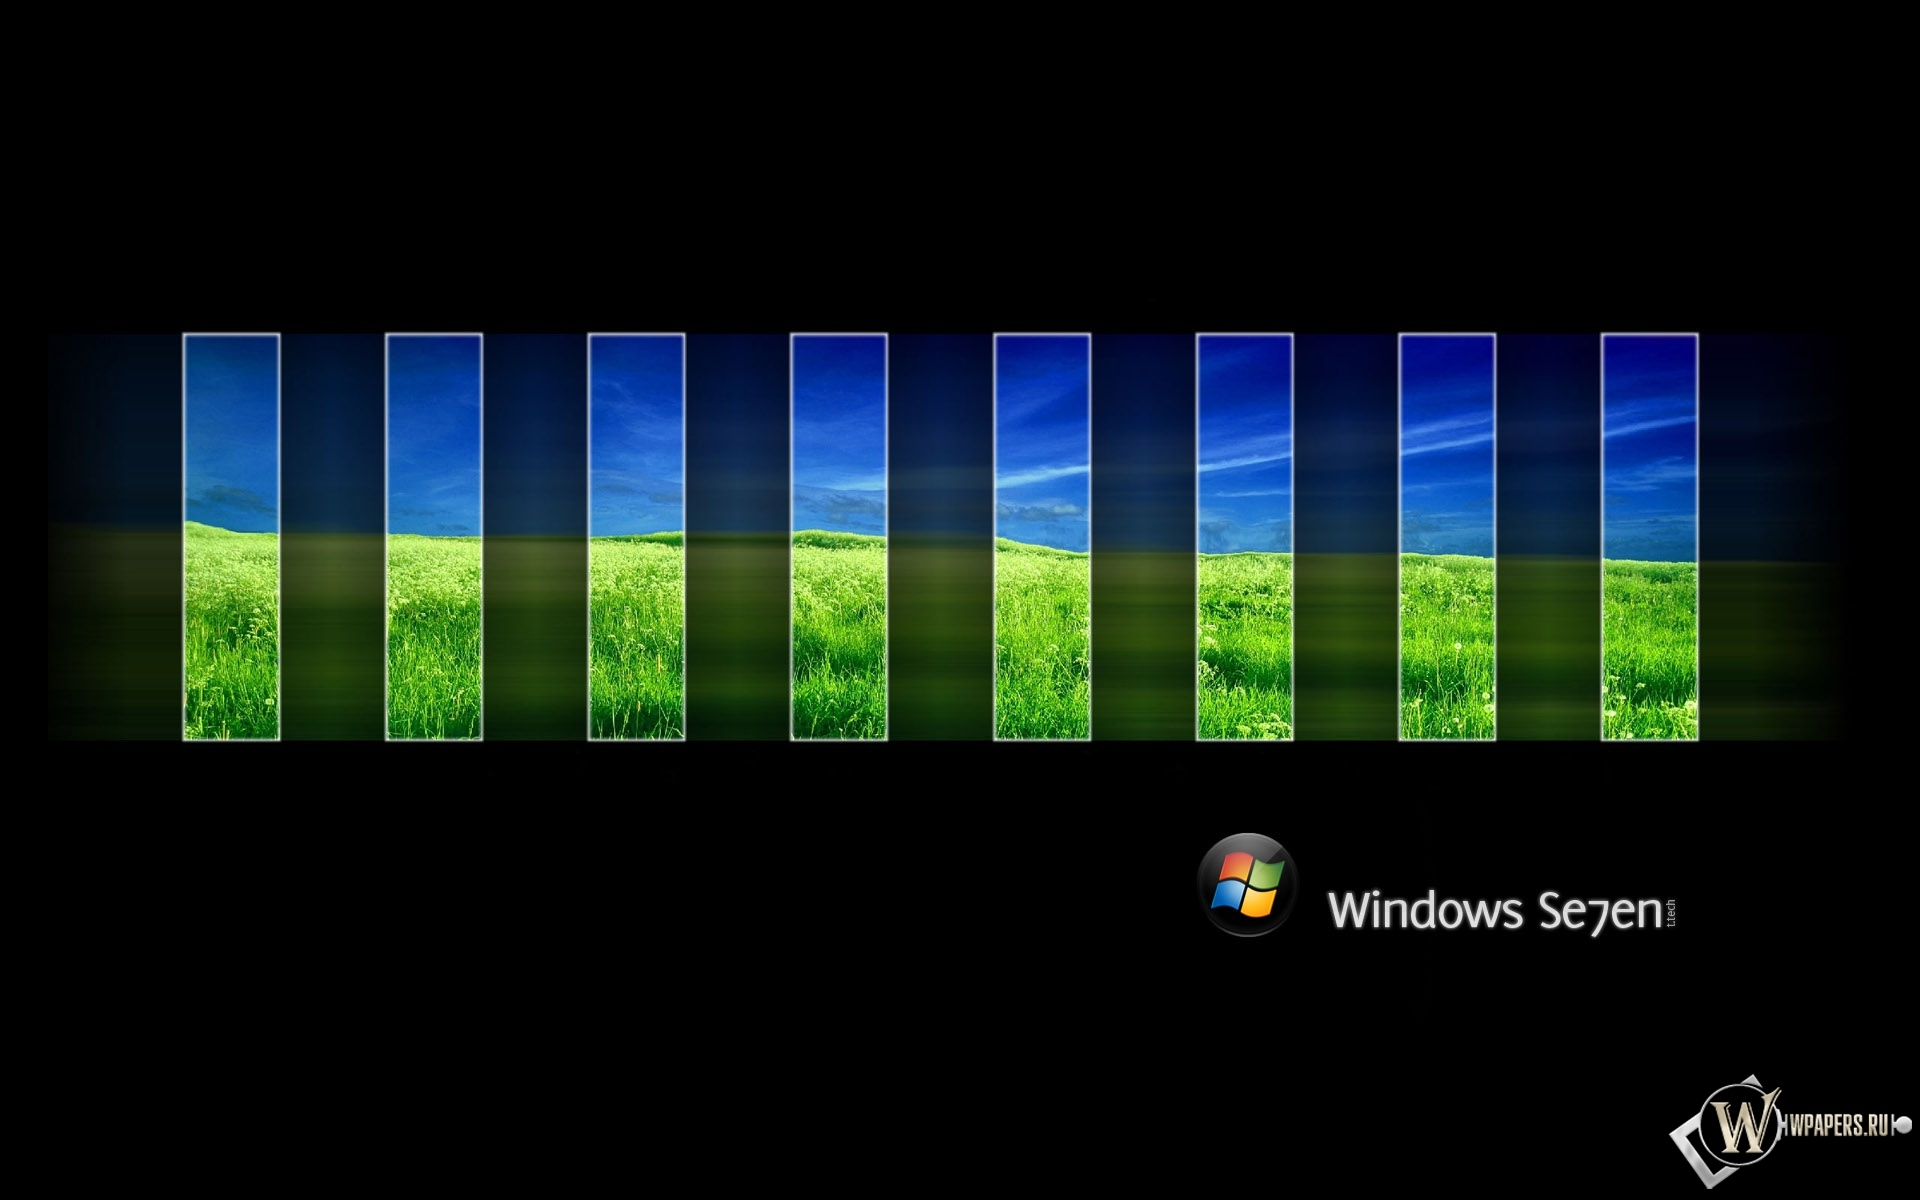 Windows 7 1920x1200